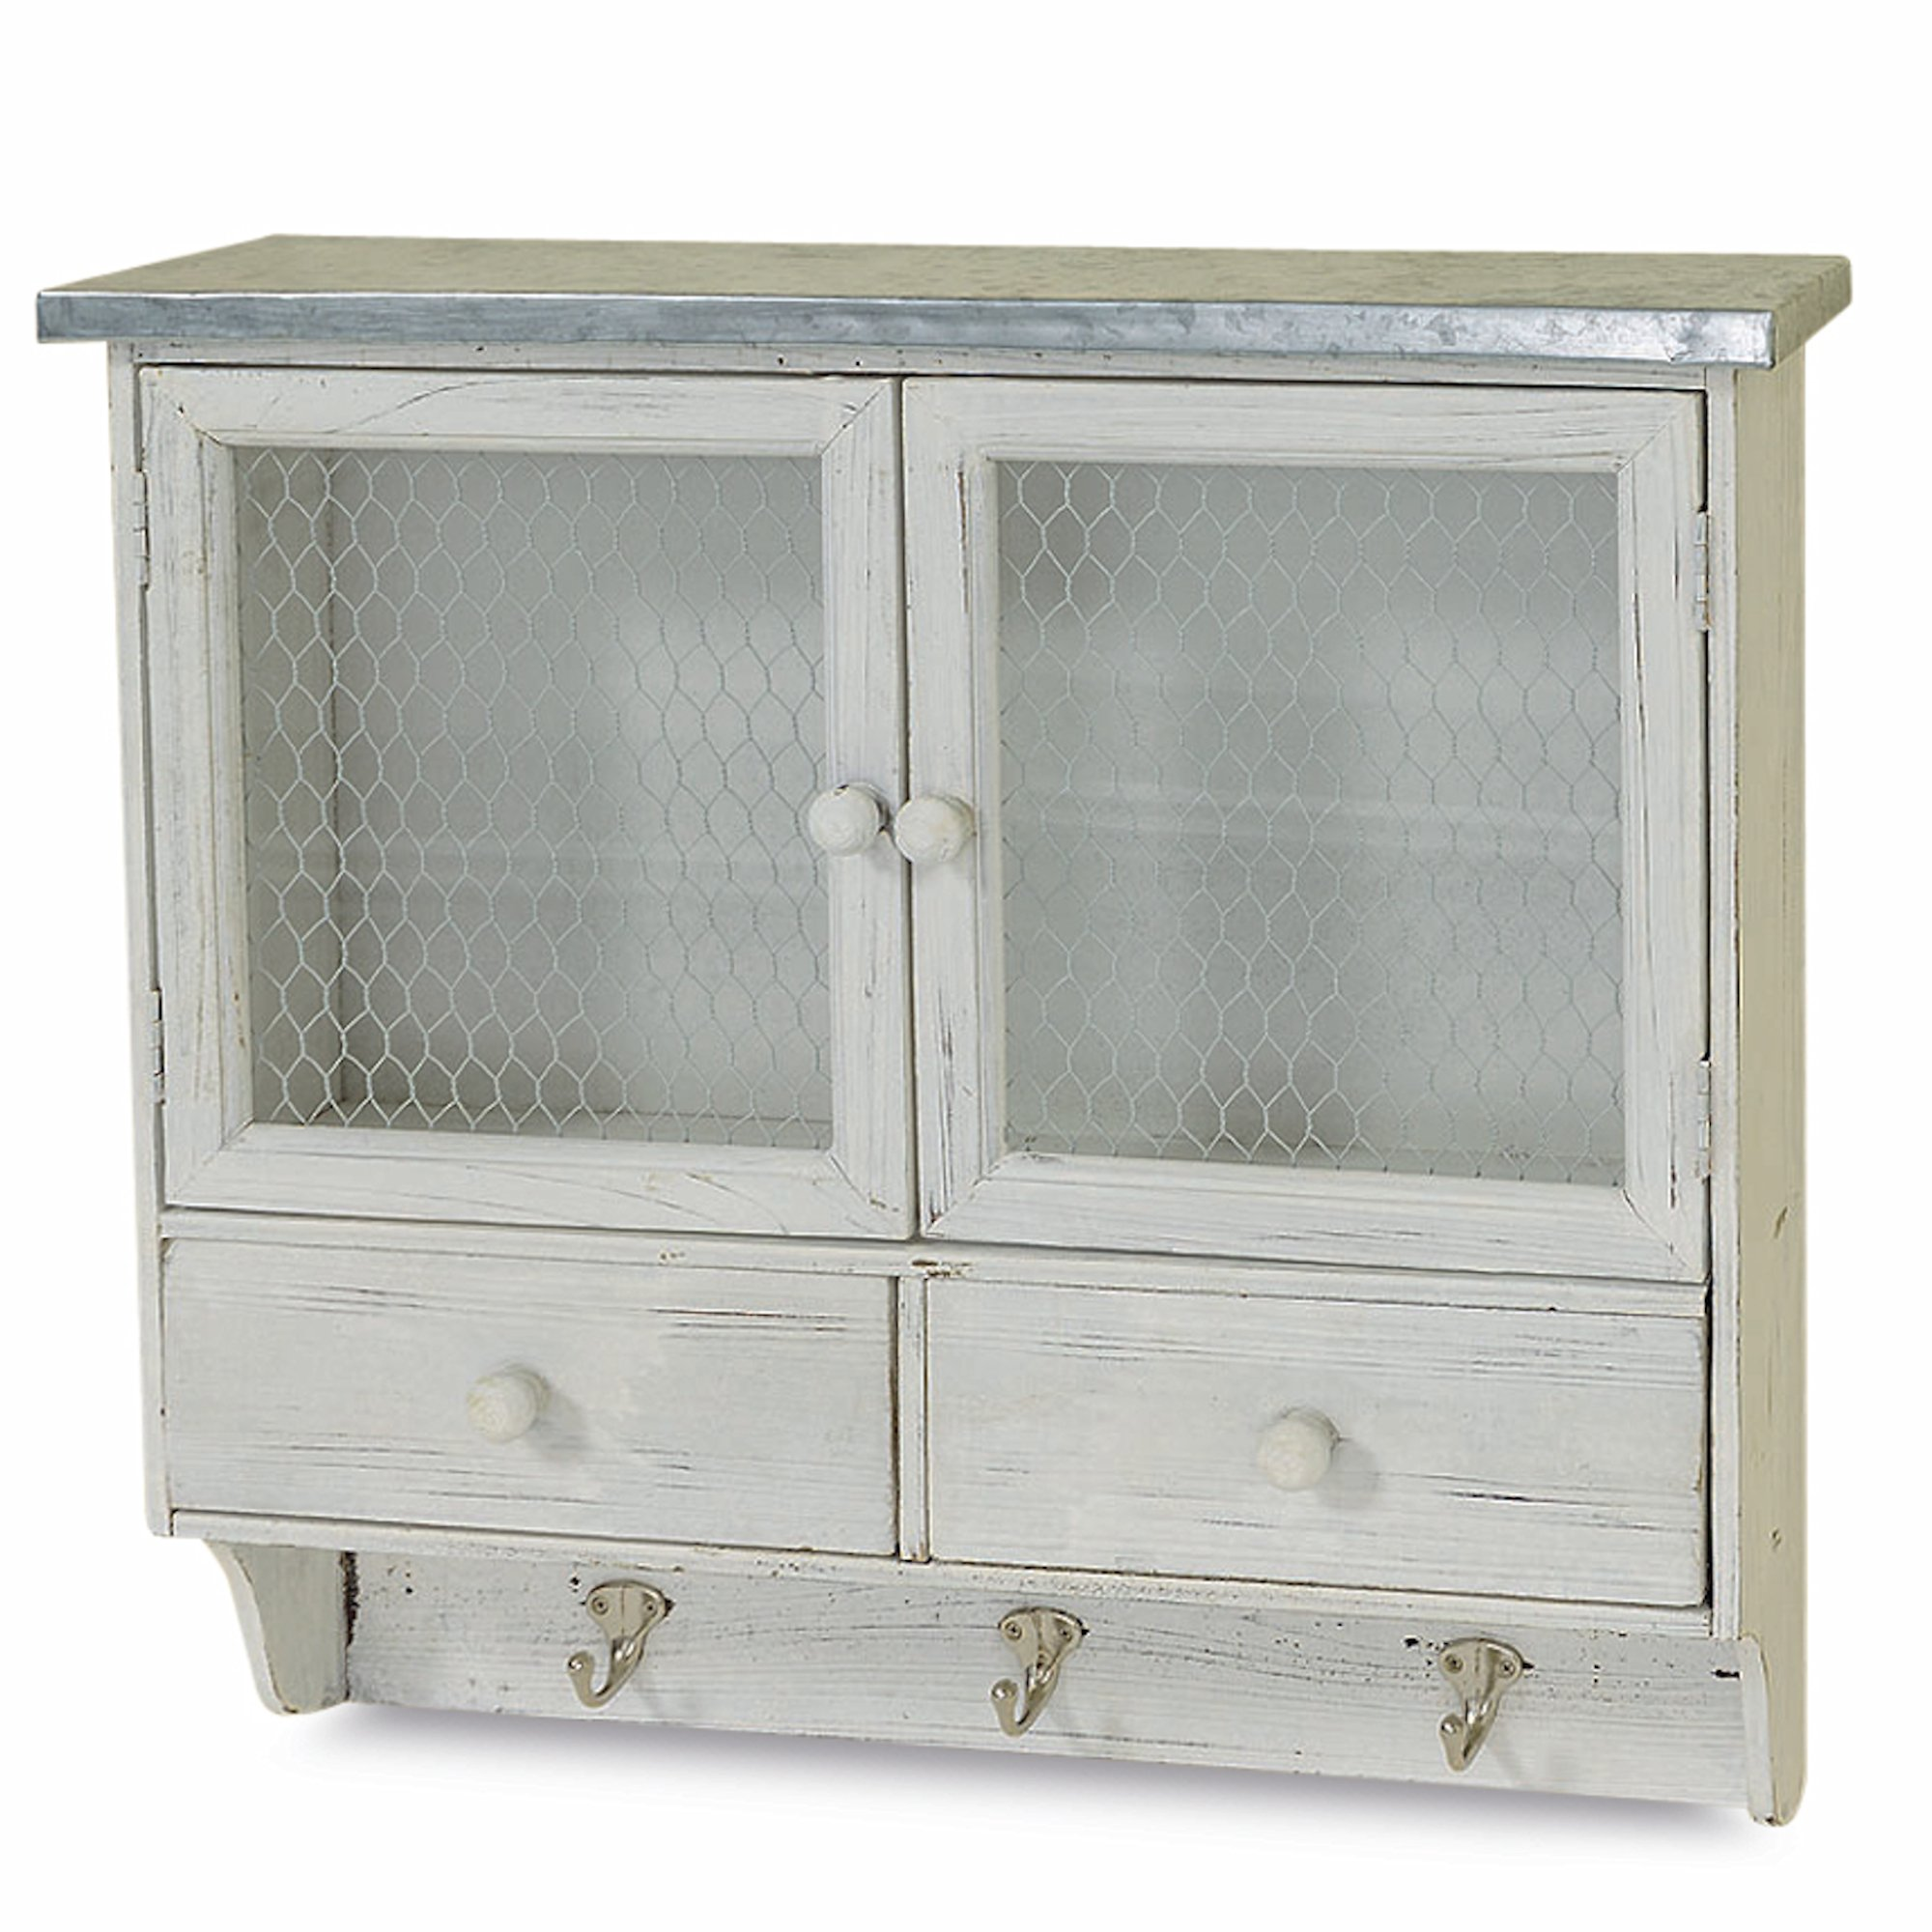 Whole House Worlds The Farmer's Market Shabby Wall Hook Cabinet, 2 Doors, Galvanized Metal, Chicken Wire, Distressed Rustic Finish, White Stained Sustainable Wood, 5¼ L x 23 W x 22 H Inches. By